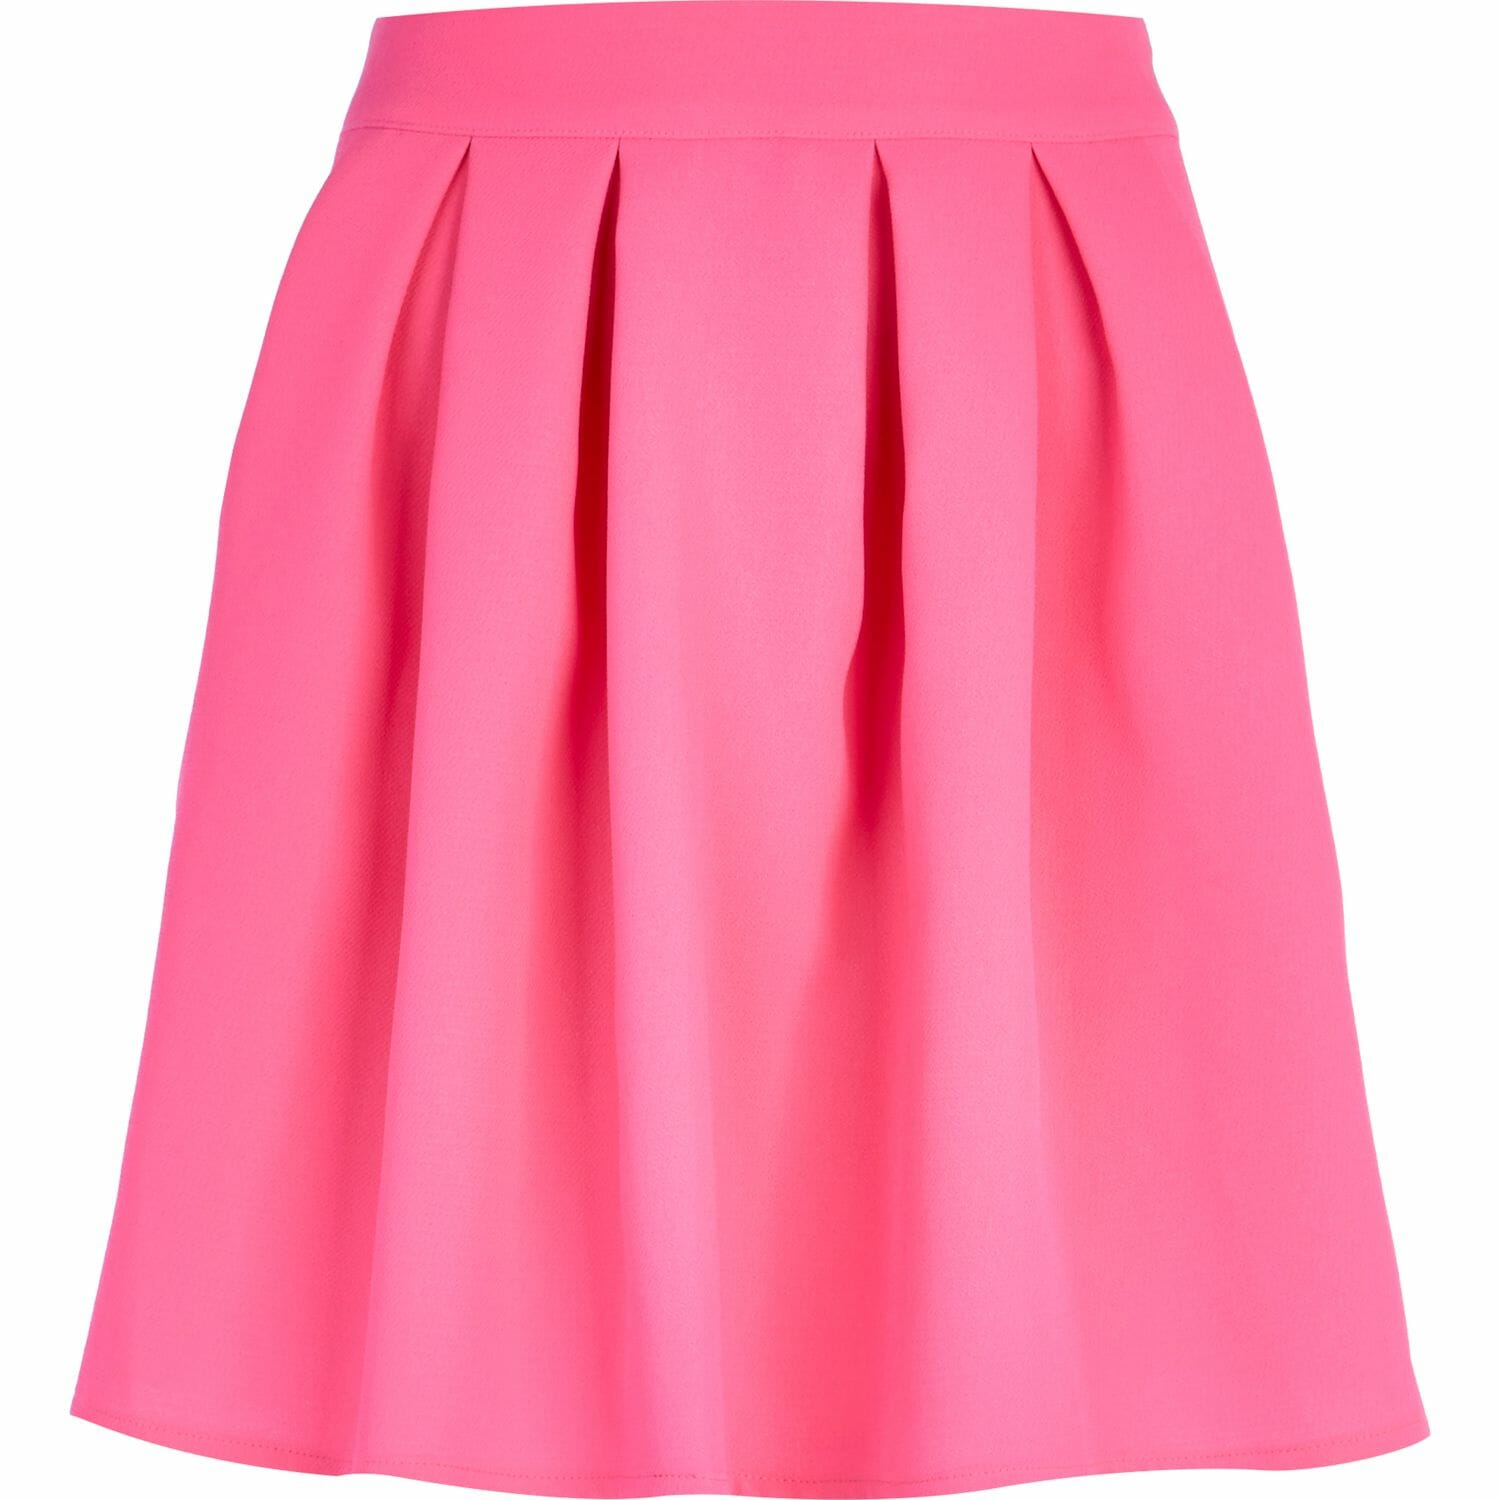 Fancy Girls Clothing Of Fairy Skirts - Minmaxst.com ...